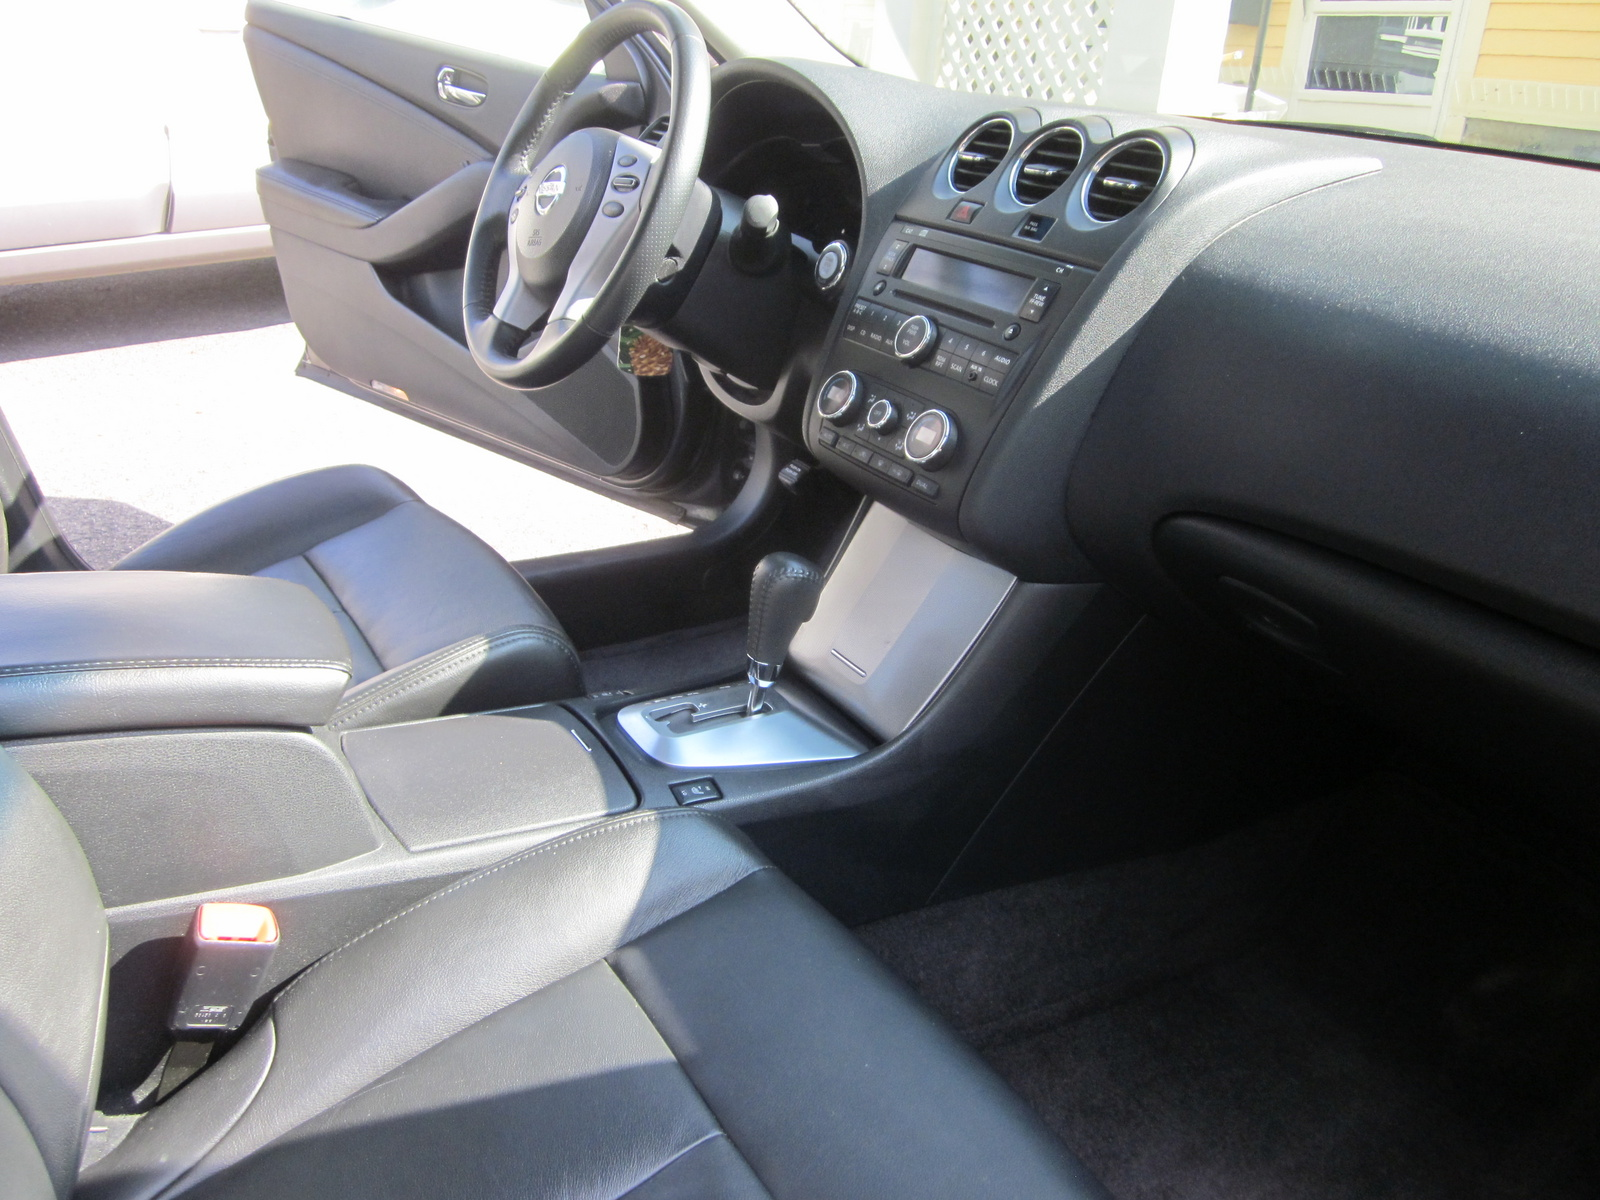 2008 nissan altima interior pictures cargurus. Black Bedroom Furniture Sets. Home Design Ideas